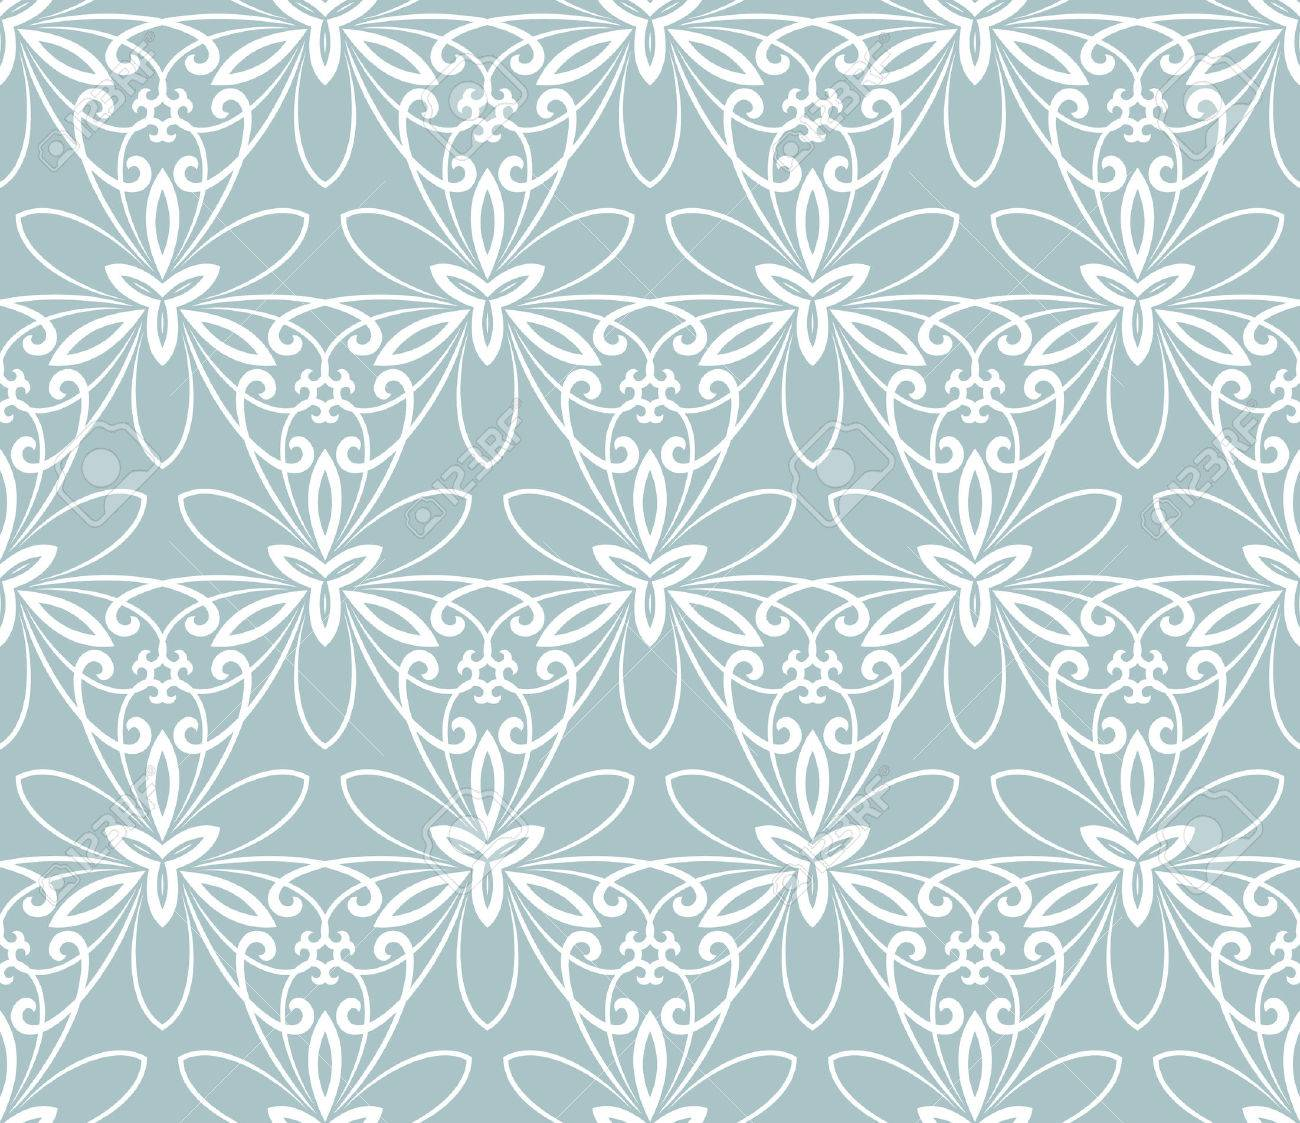 Floral  ornament. Seamless abstract classic blue and white pattern Stock Photo - 45567820